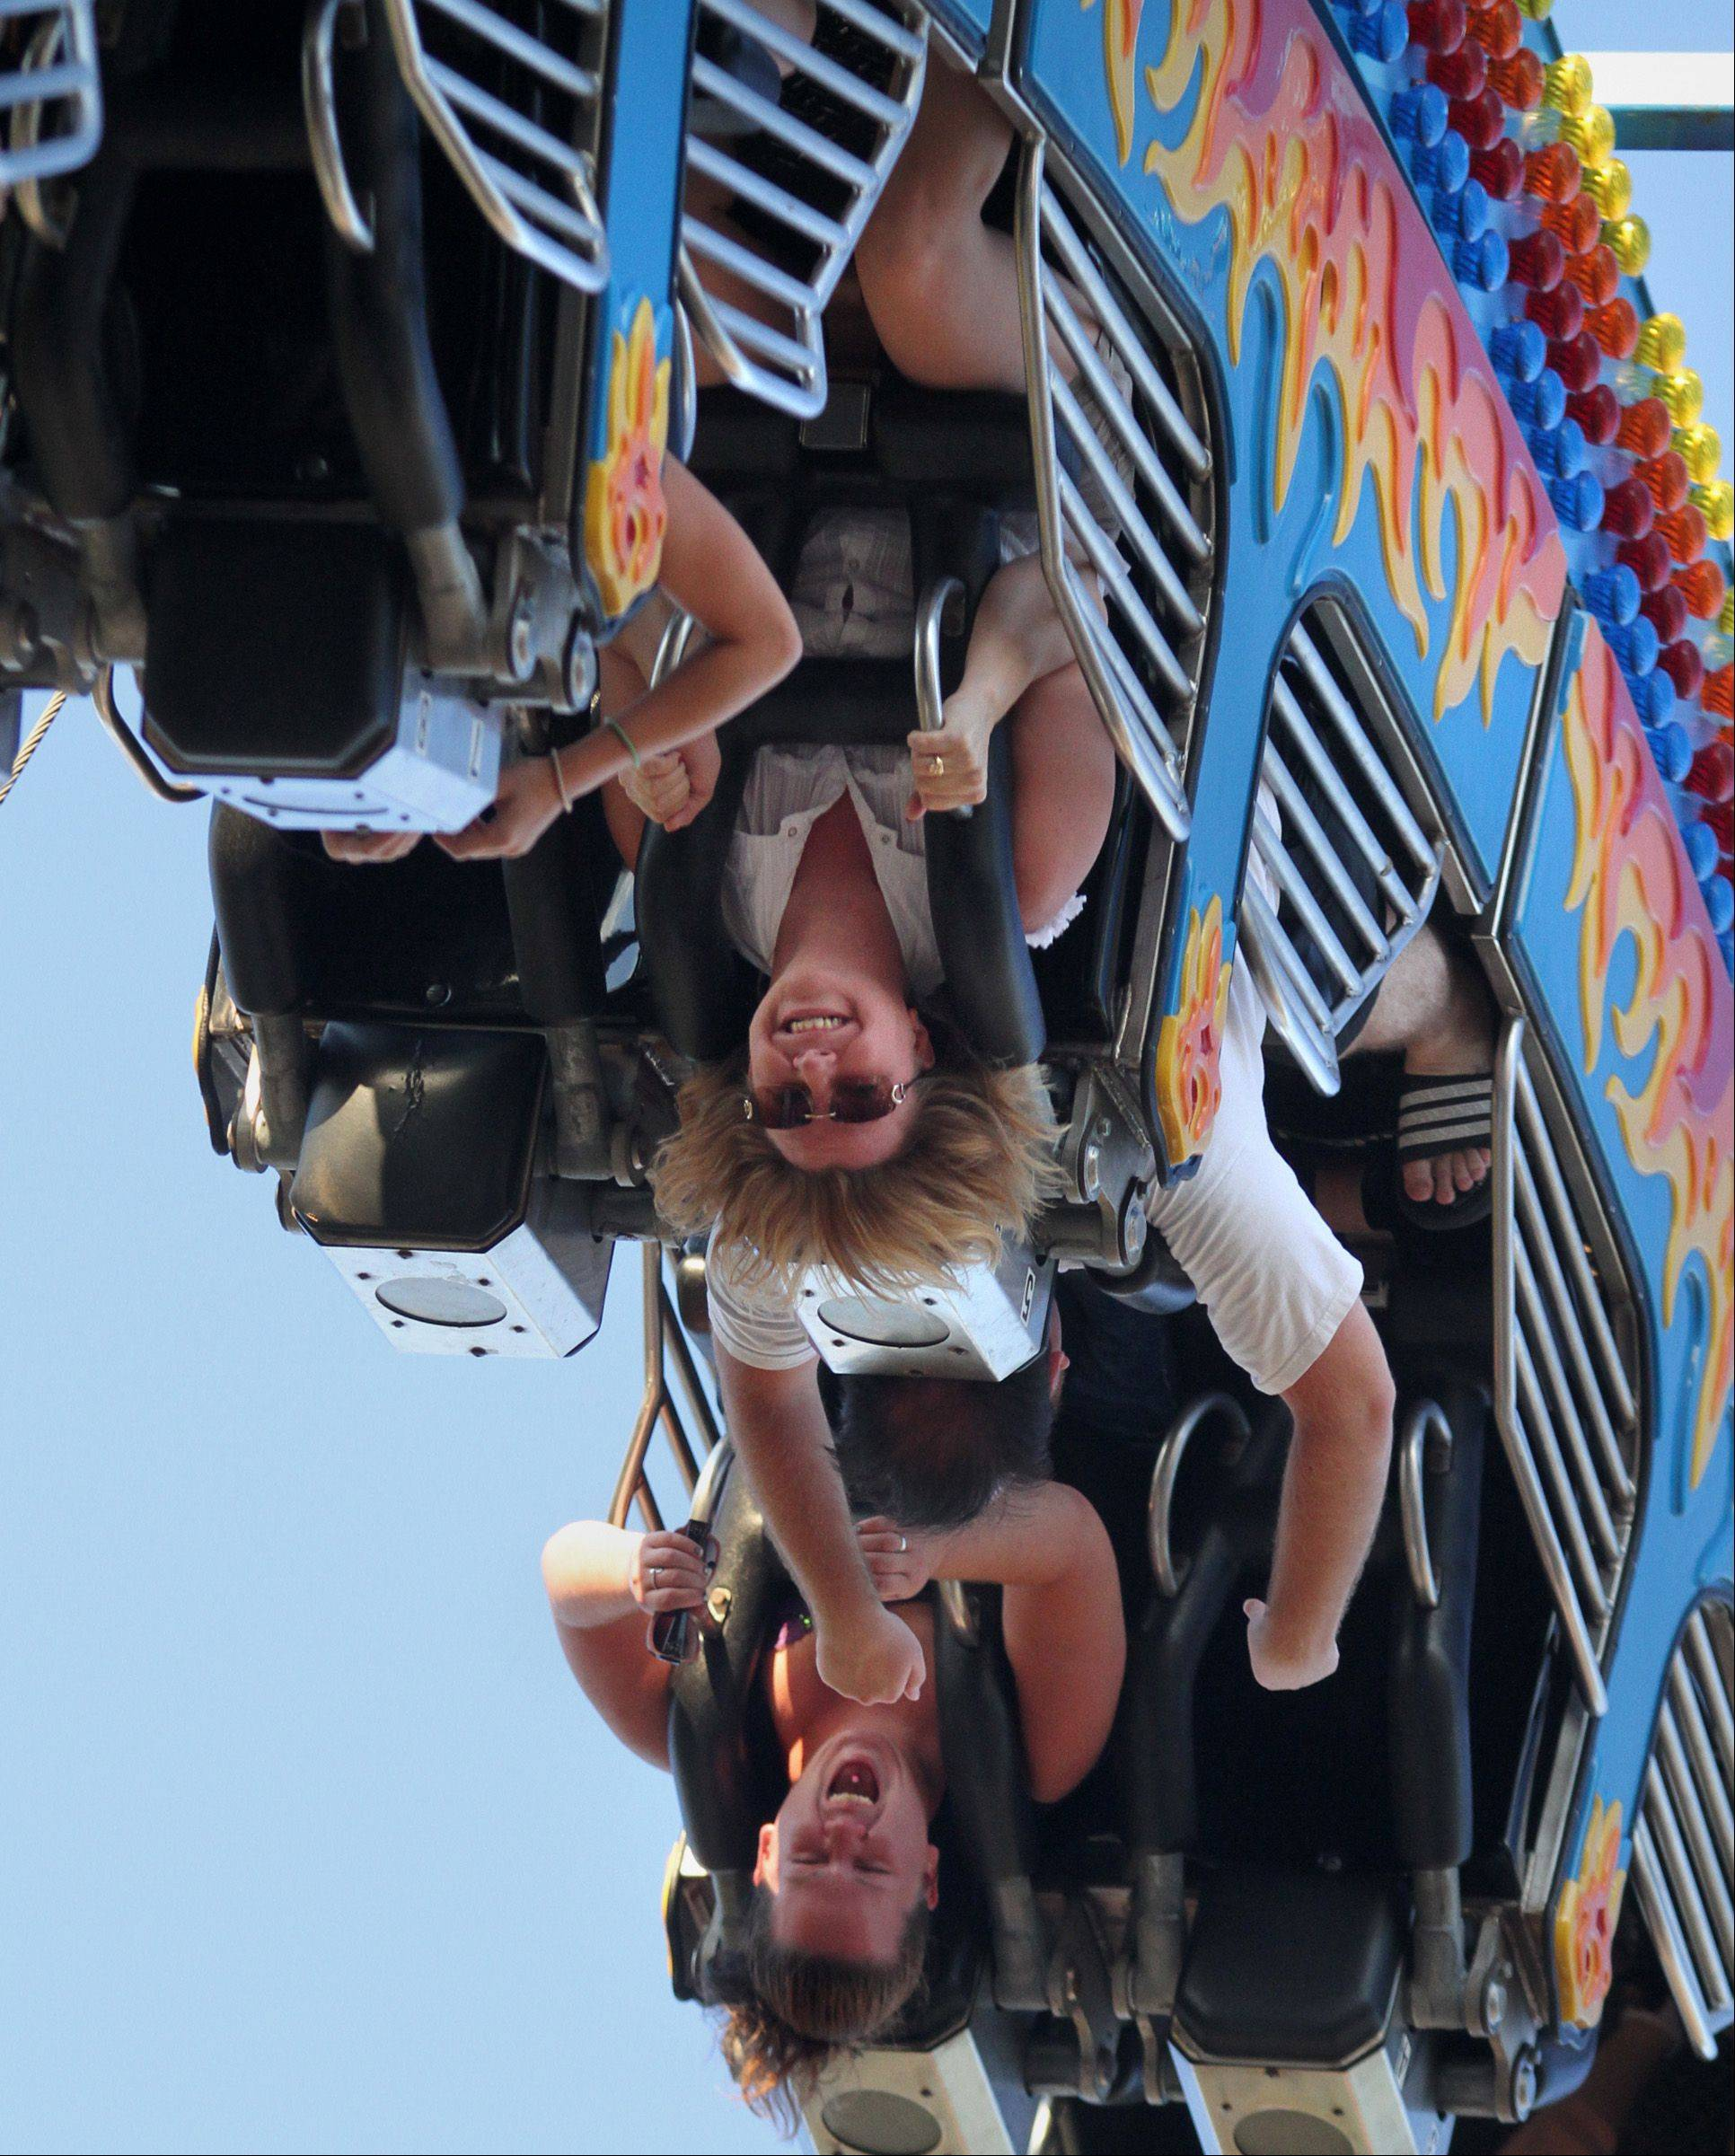 Take a spin on some carnival rides at the annual Wauconda Fest in Wauconda.